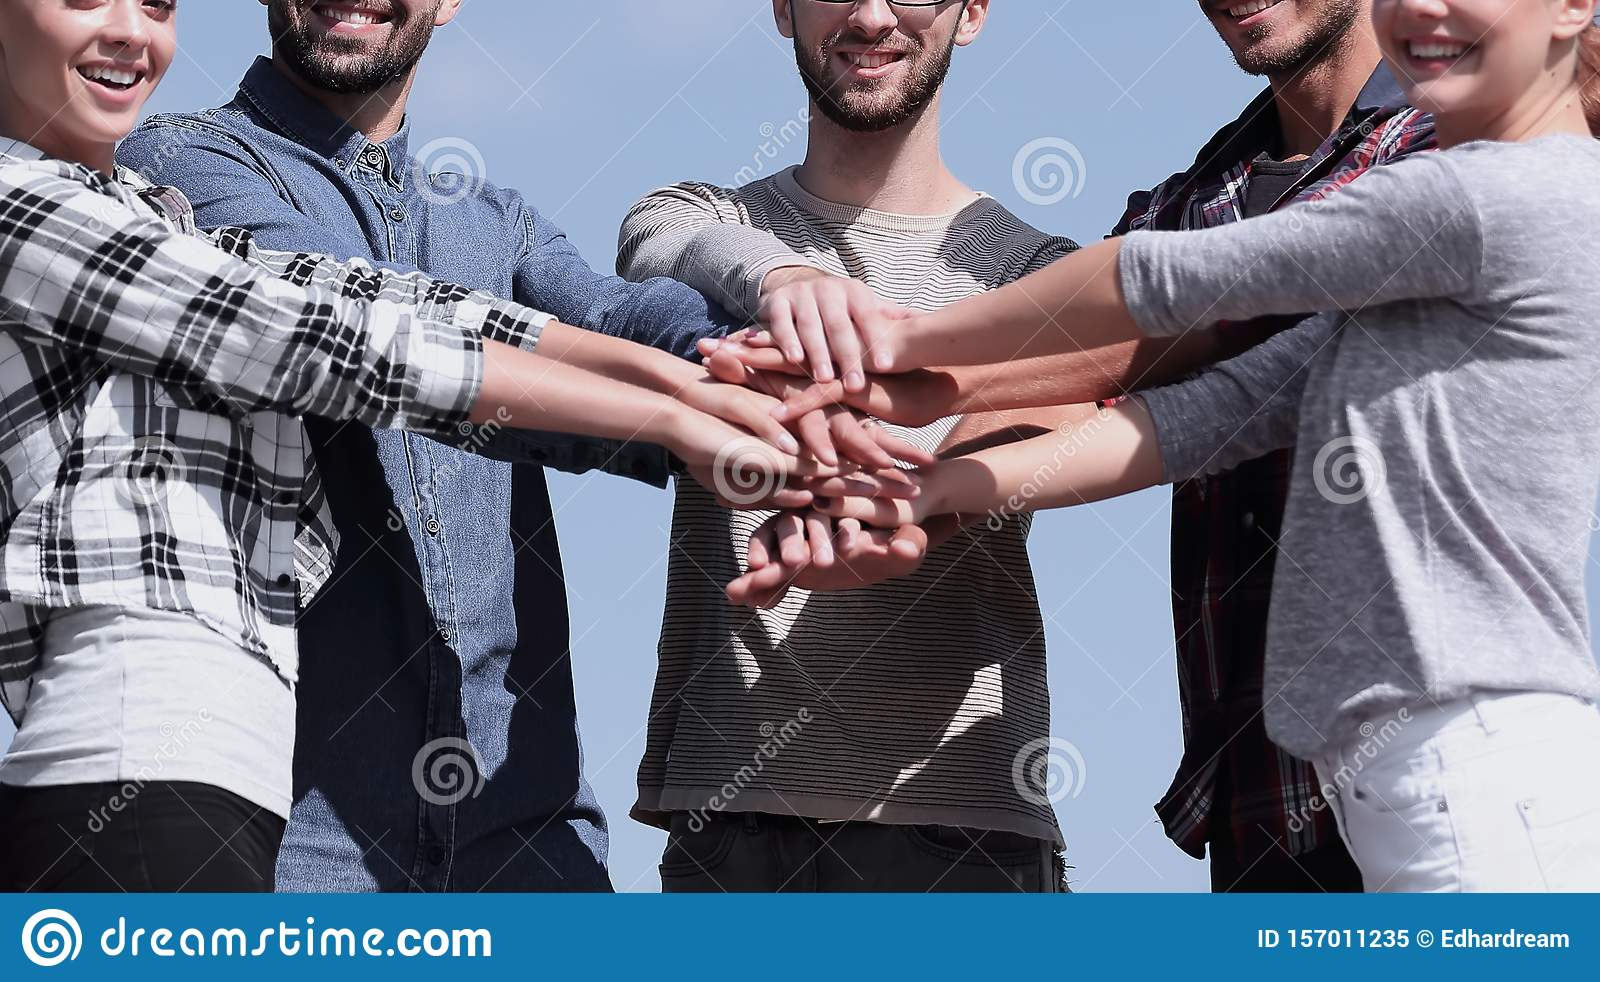 Group of young people shows their unity.